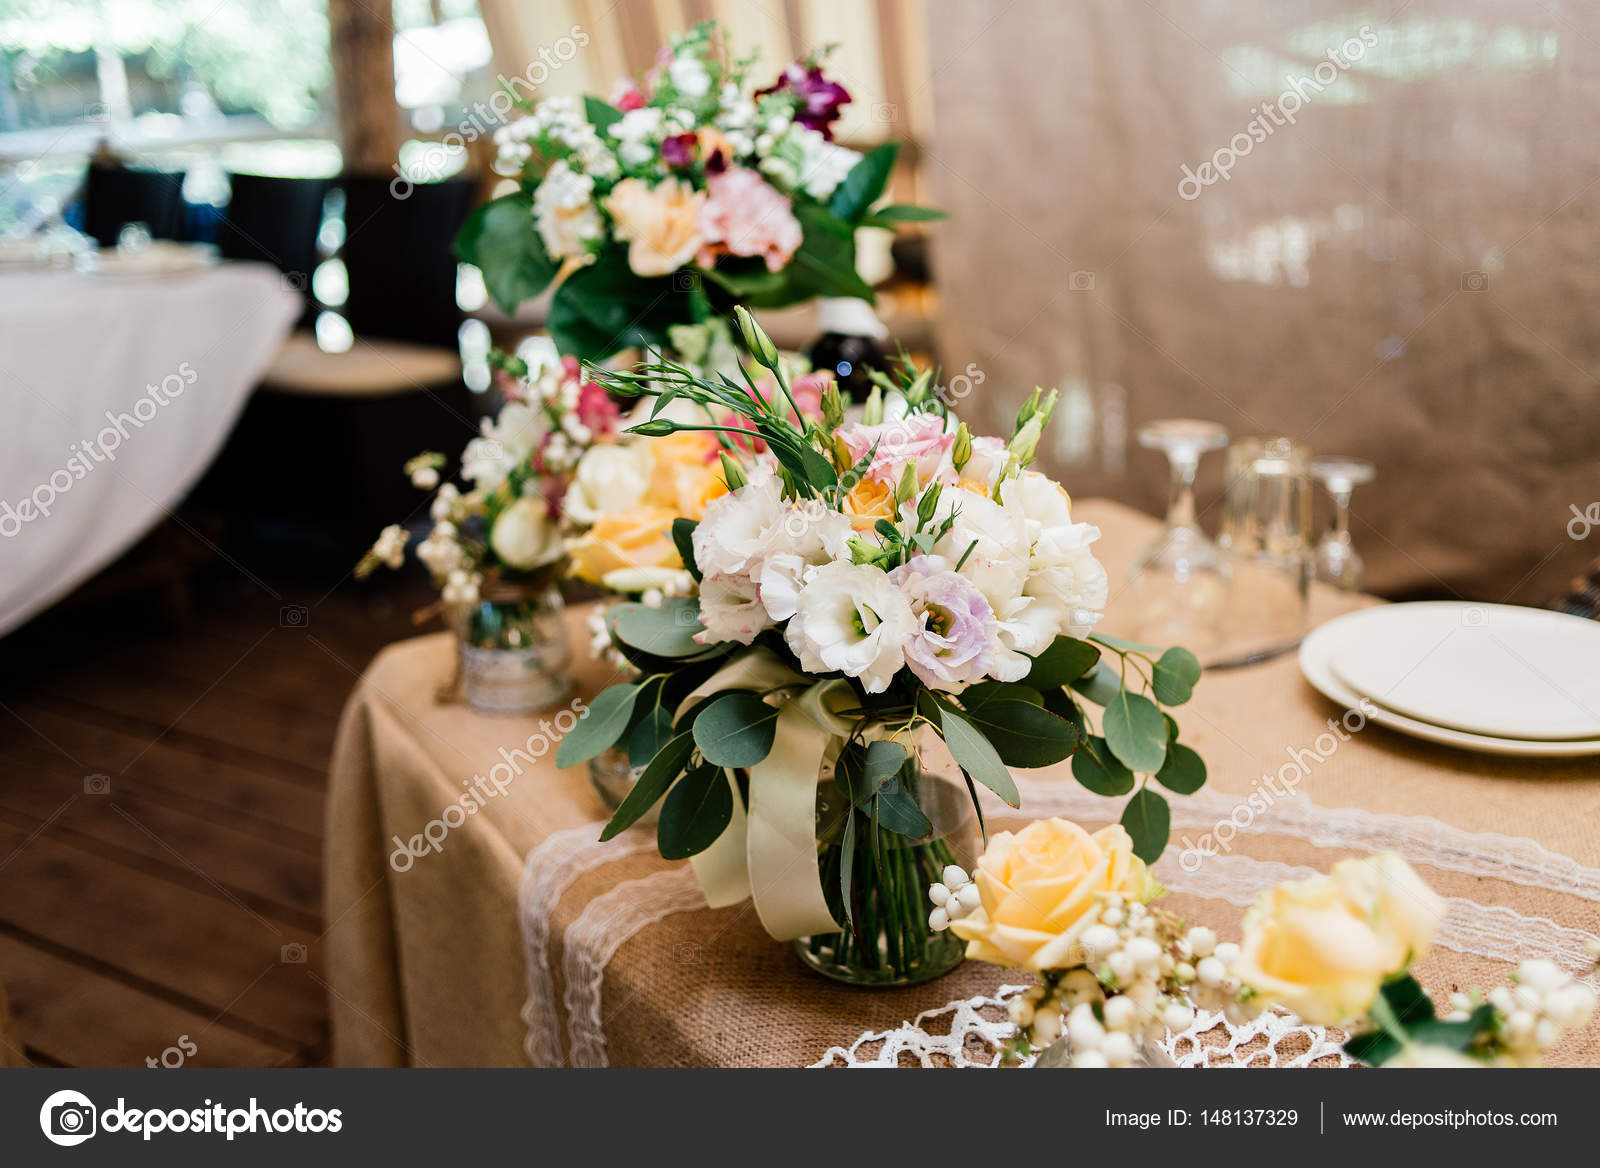 Wedding Bouquets Of Yellow White And Pink Roses Are In Vases